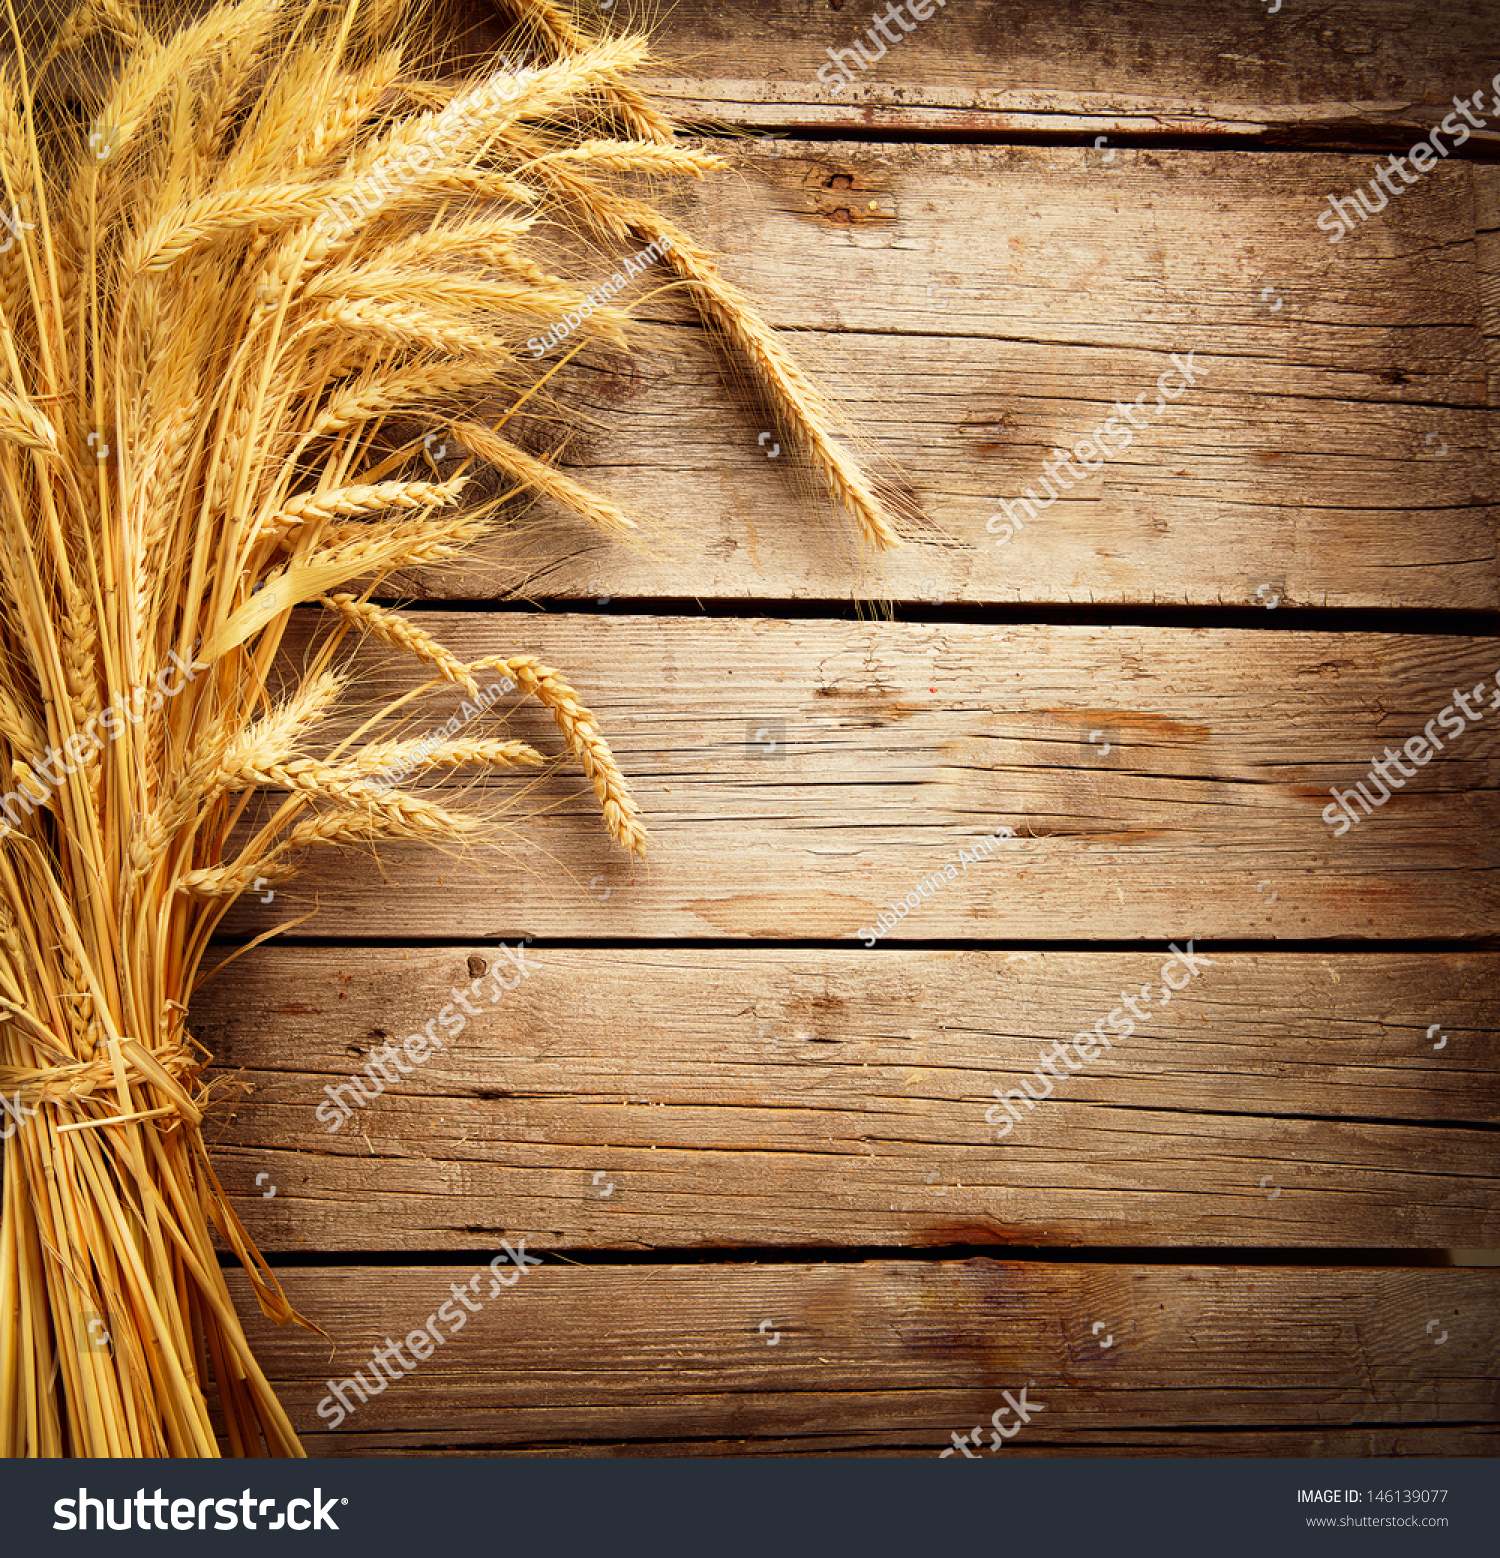 Wooden Table Background ~ Wheat ears on wooden table sheaf stock photo